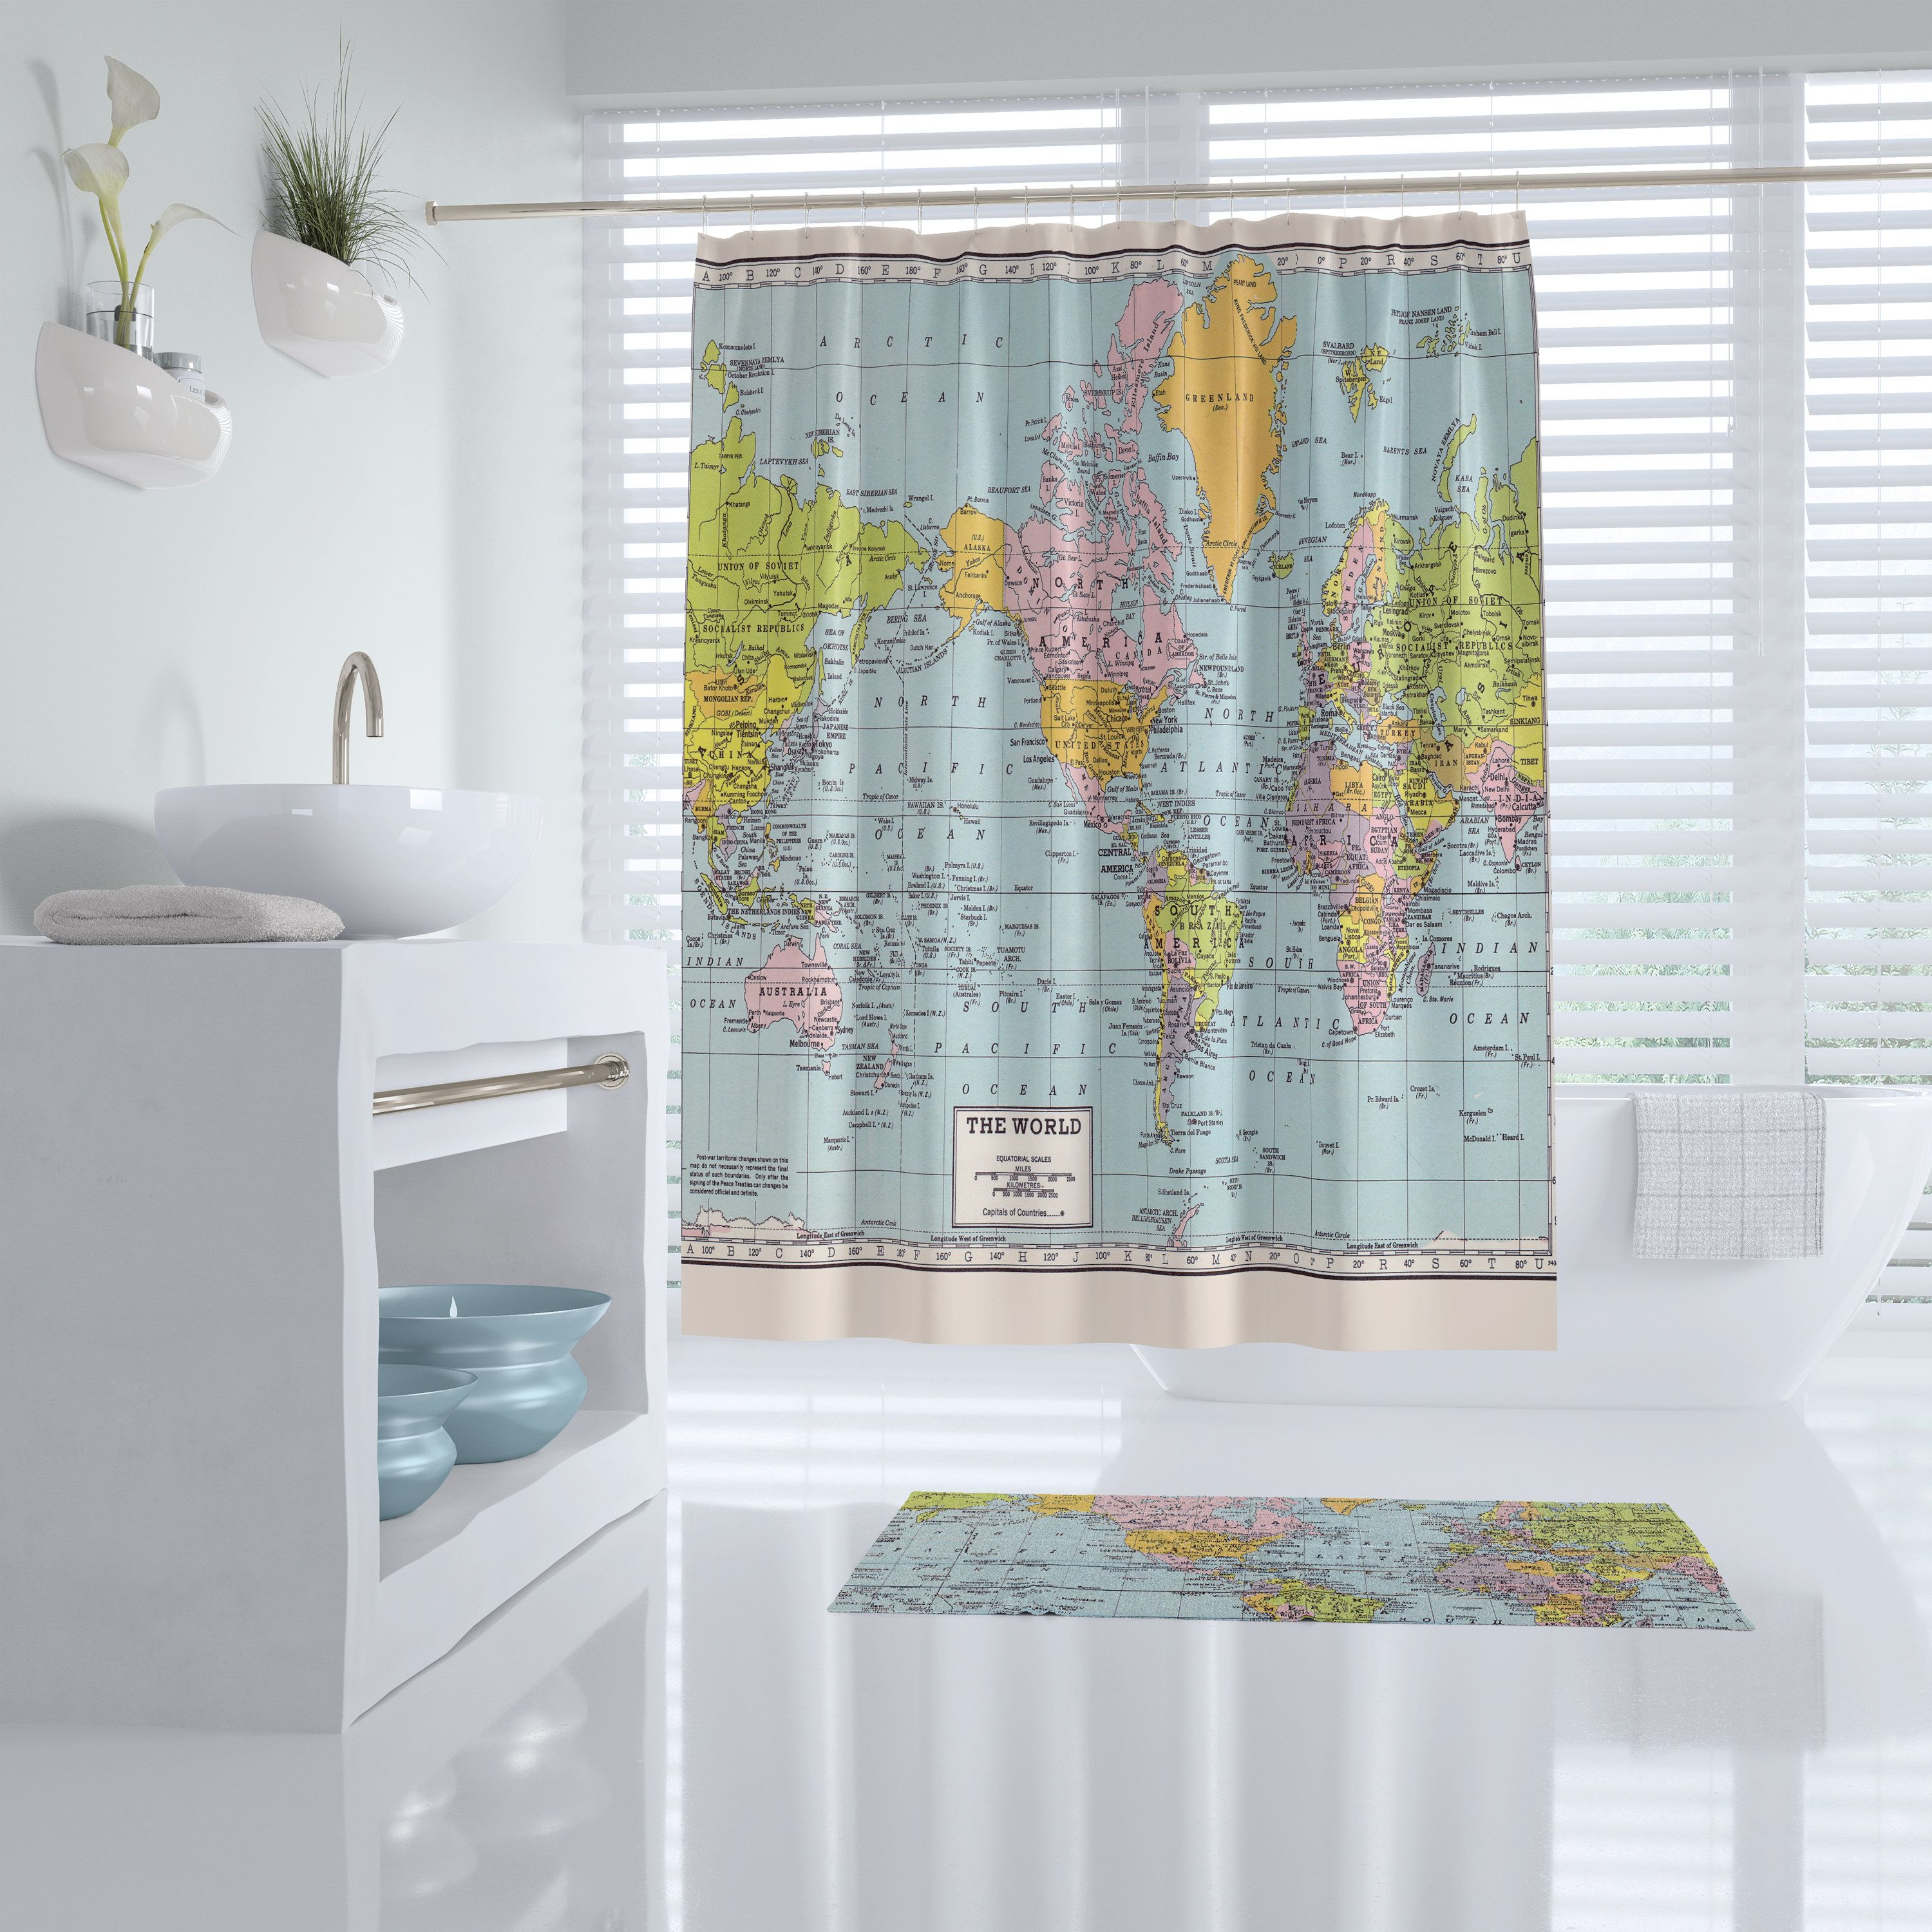 World Map Shower Curtain Historical Colorful Vintage Map Etsy Bathroom Decor Kid Bathroom Decor Fabric Shower Curtains